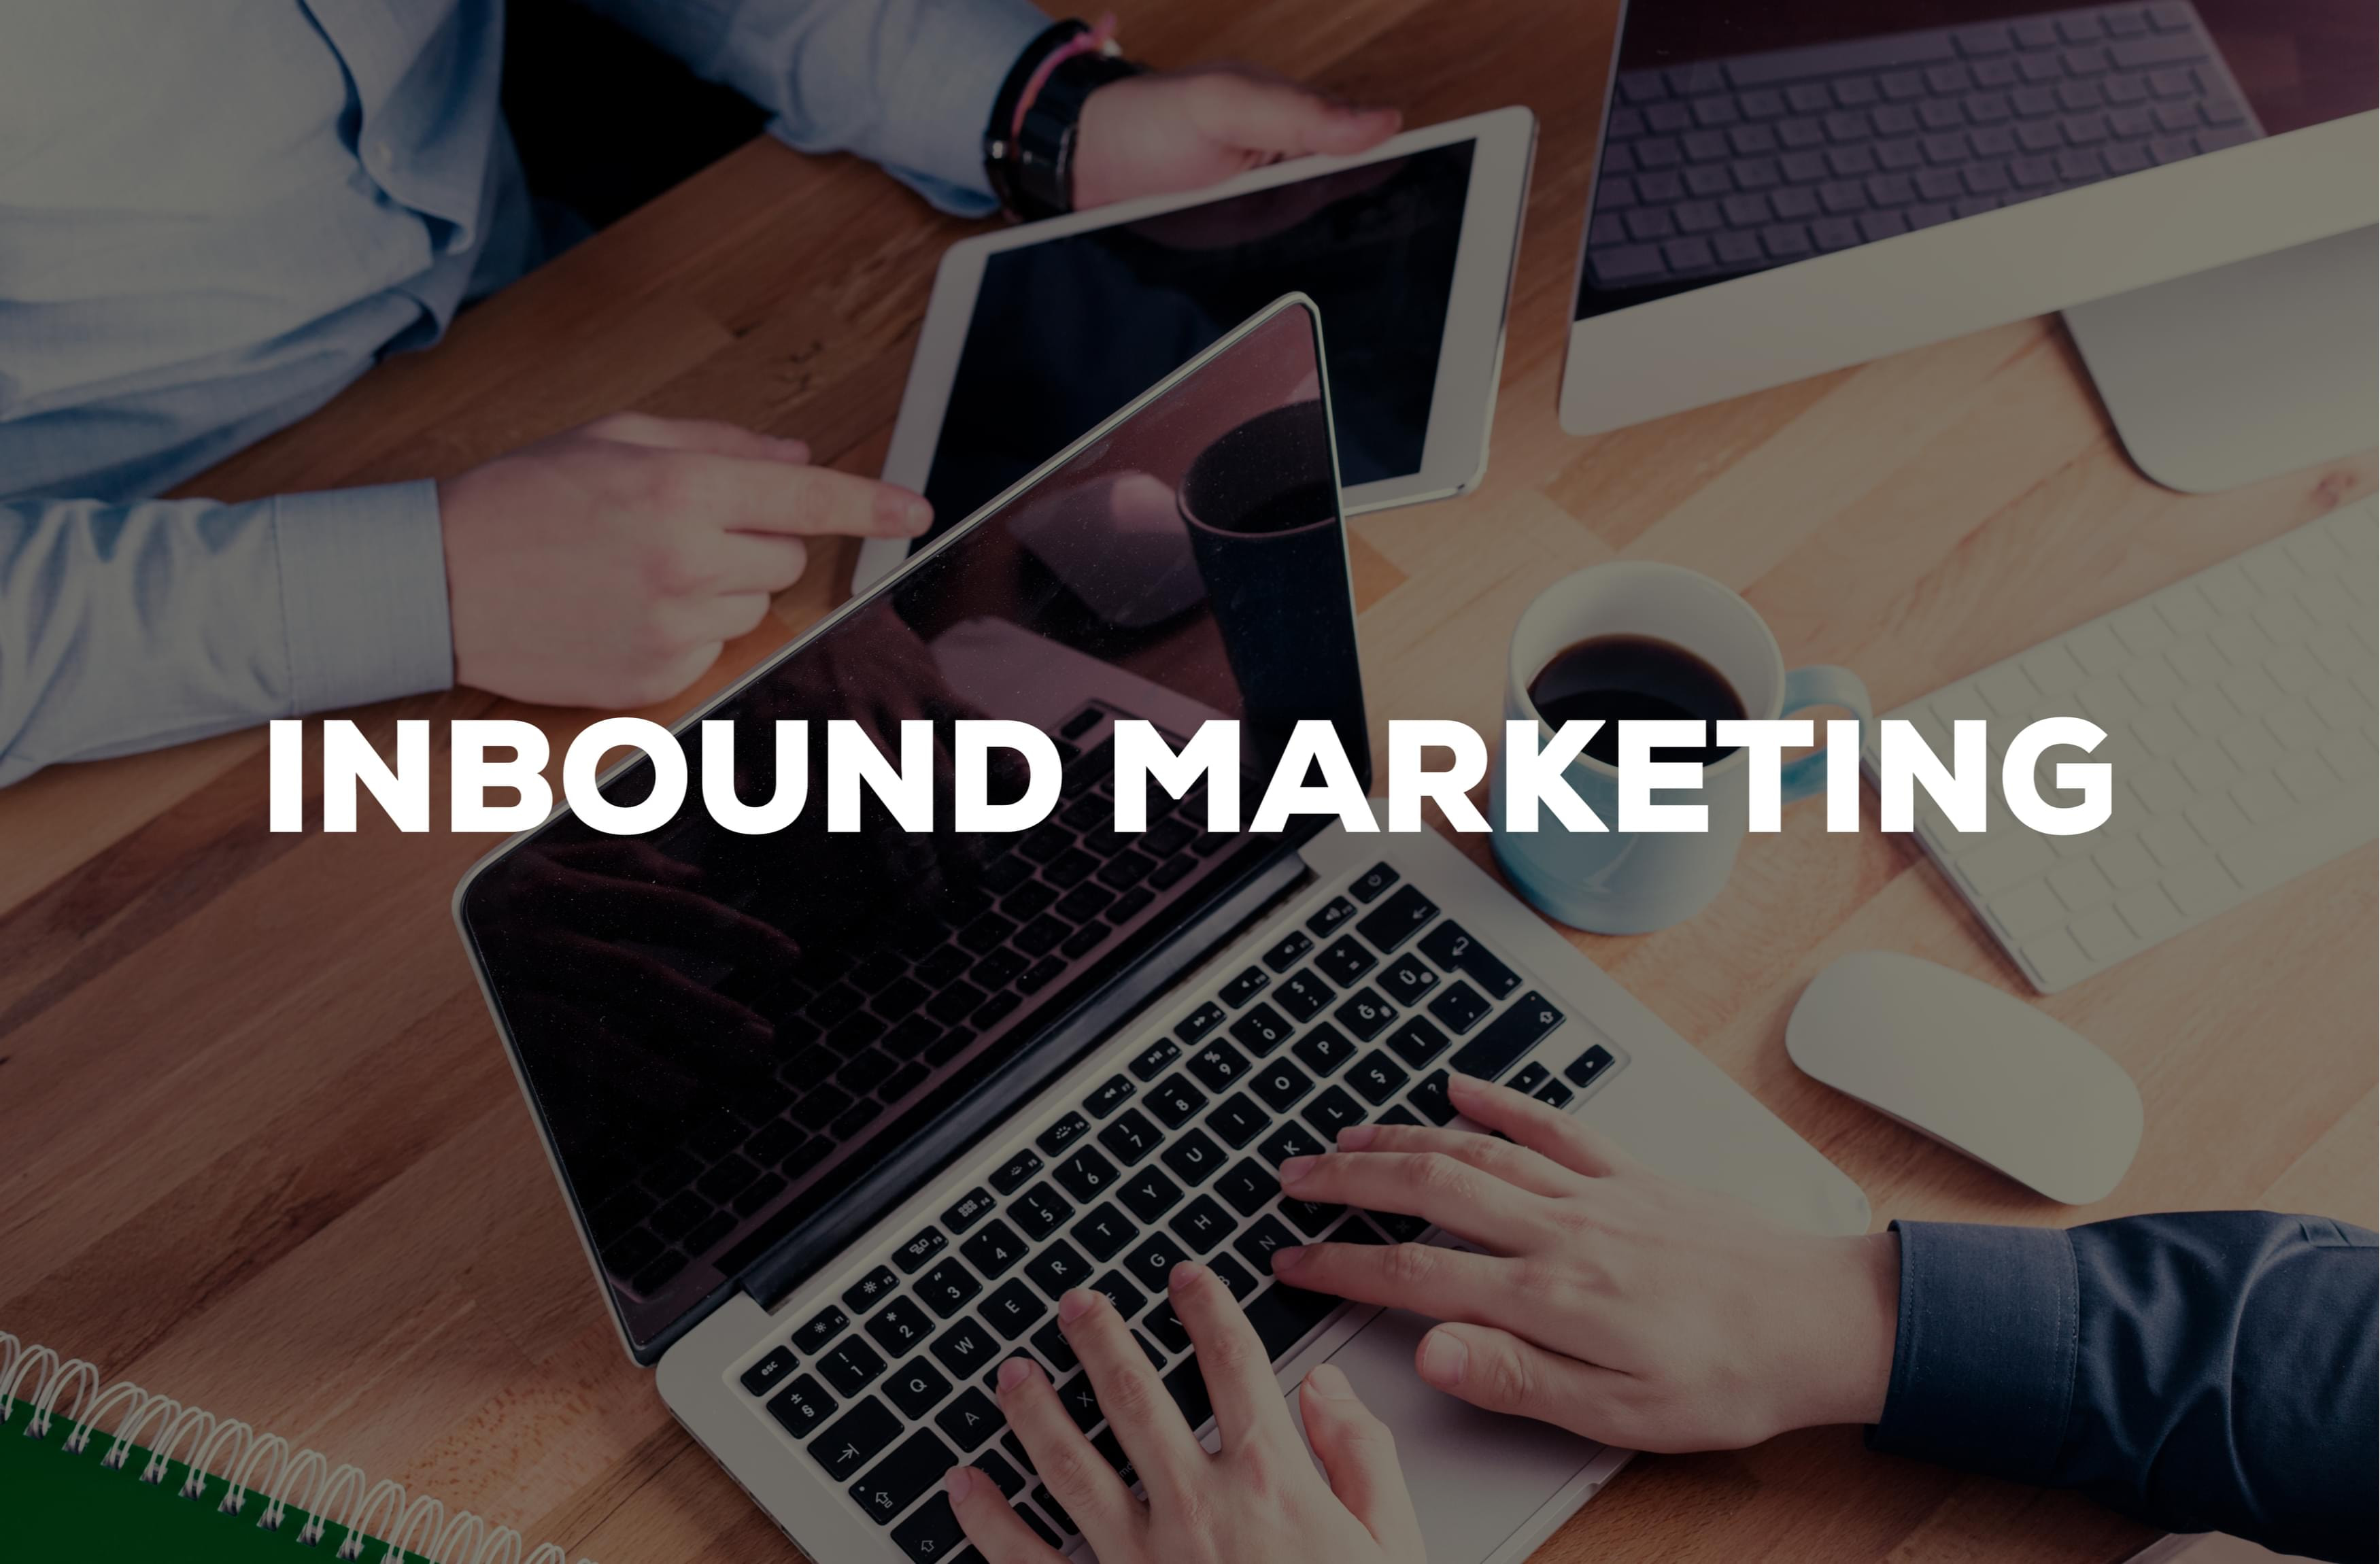 How Call Tracking Works with Inbound Marketing